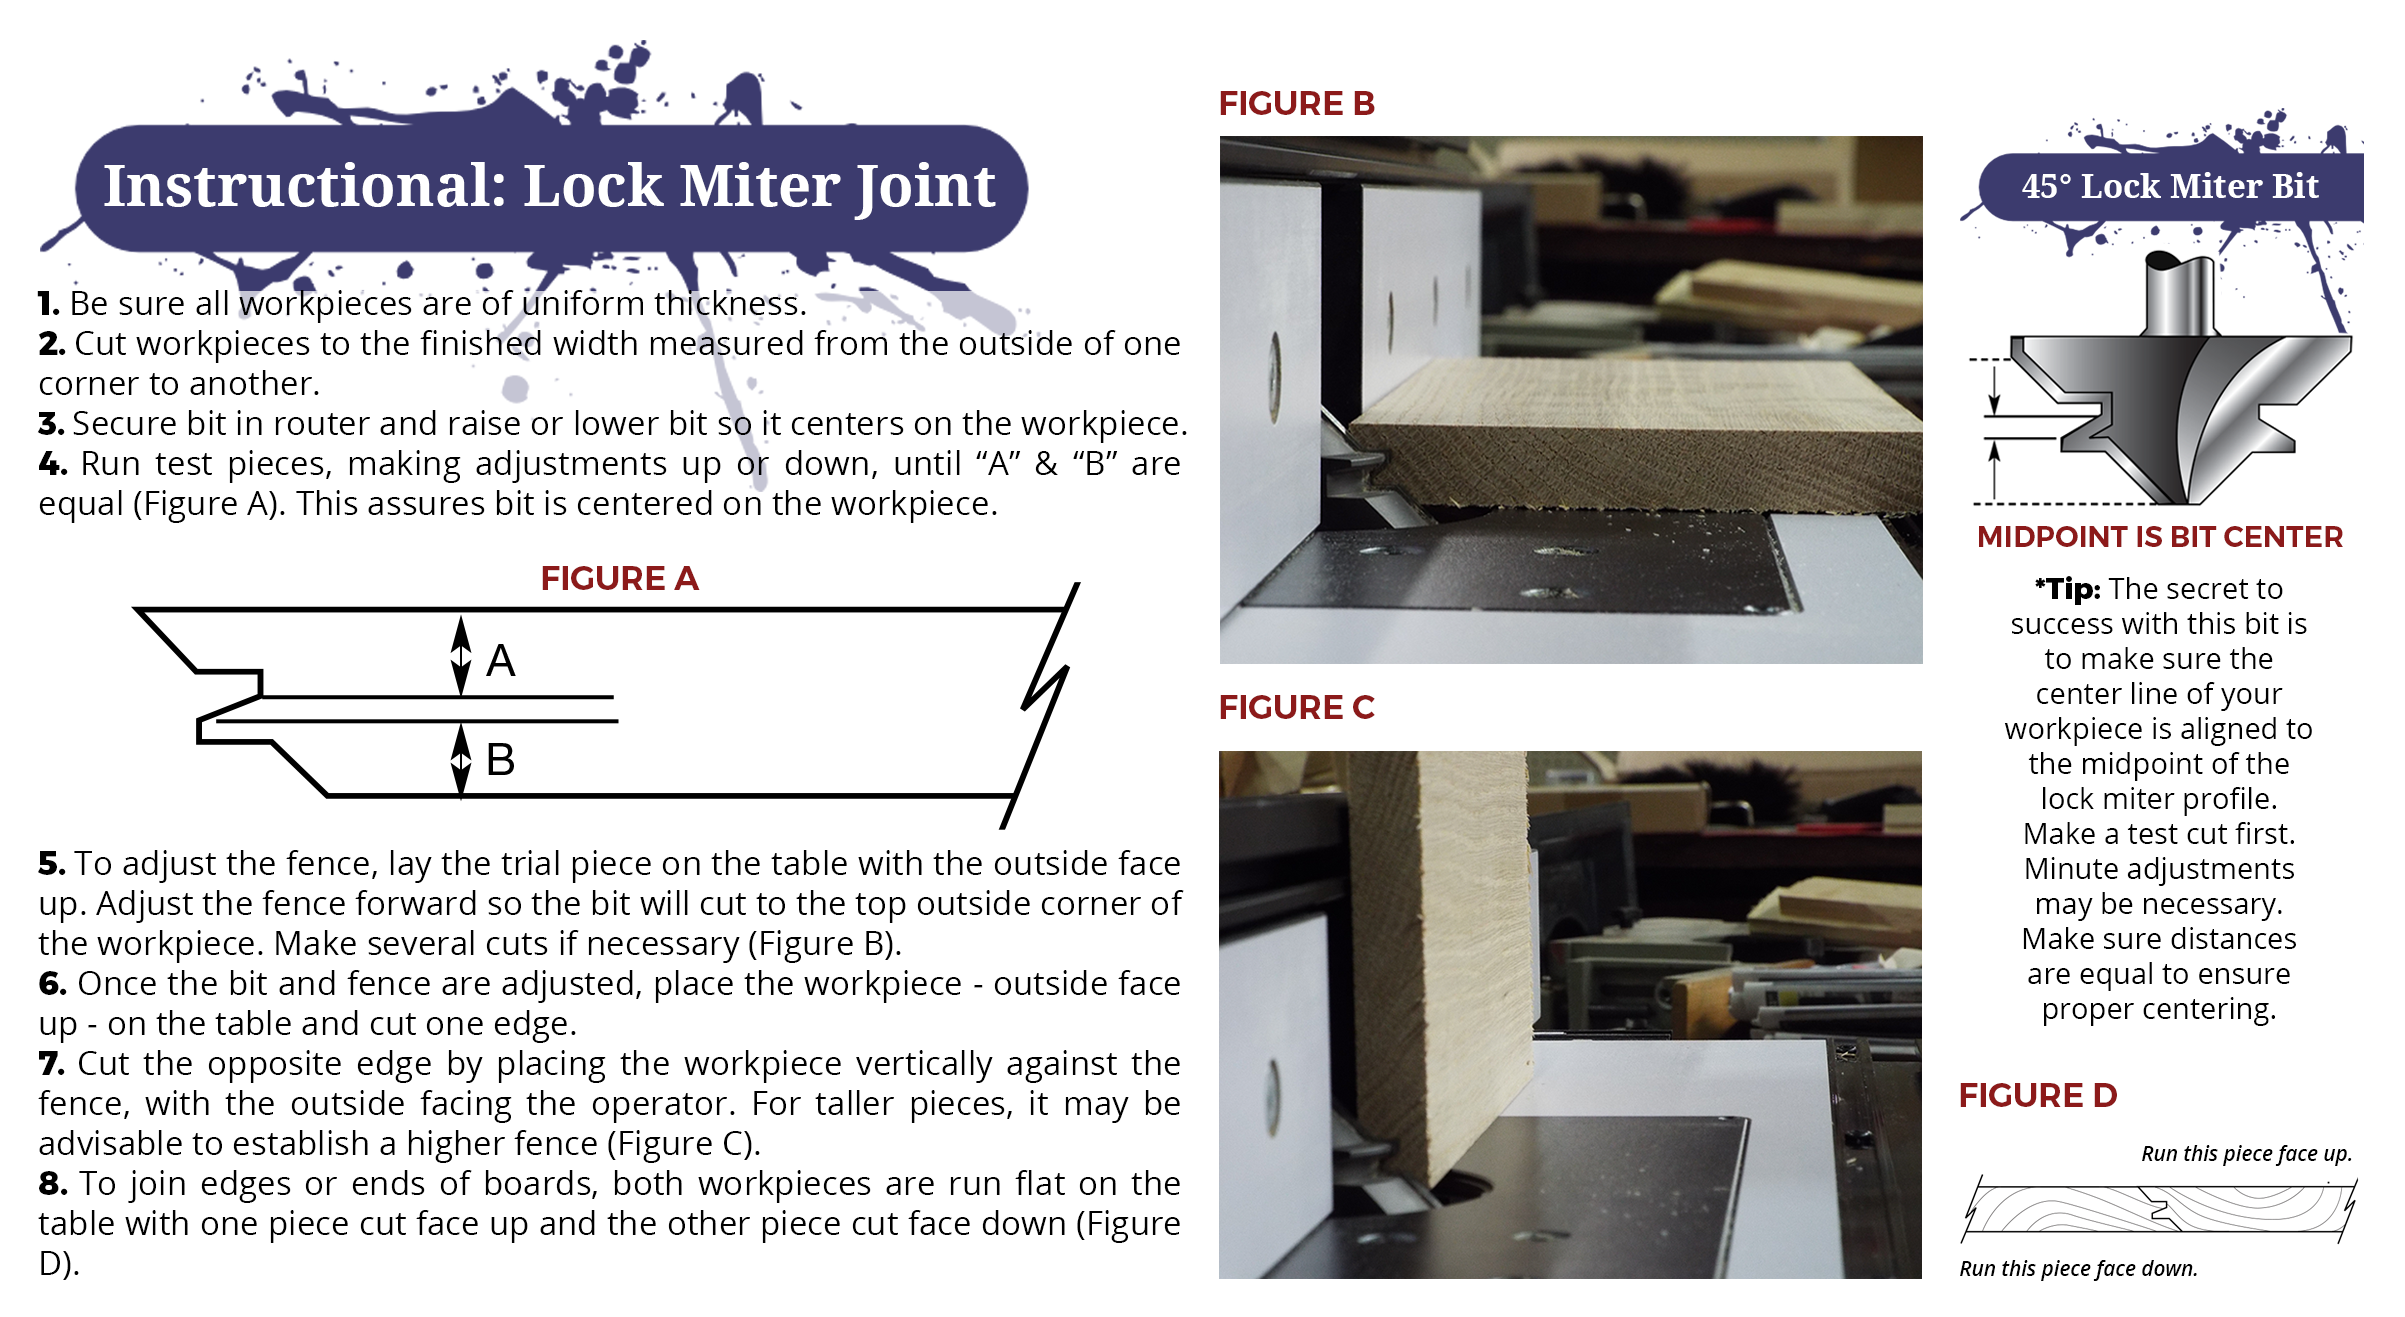 Instructional image from Eagle America about making a lock miter joint.